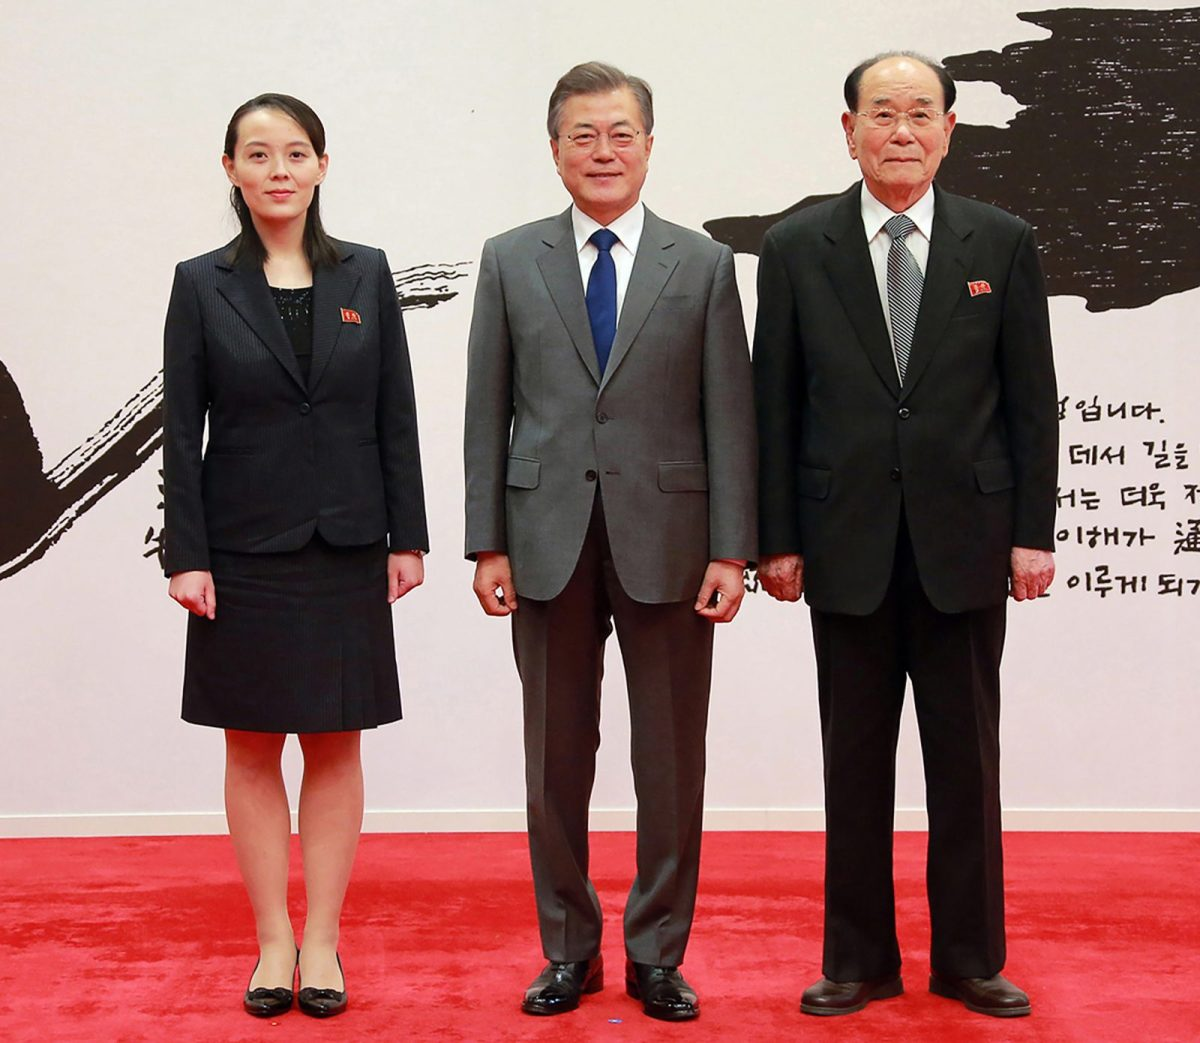 South Korean President Moon Jae-in (C) with North Korean leader Kim Jong-un's sister Kim Yo-jong (L) and North Korea's ceremonial head of state Kim Yong-nam, who has now been replaced. Photo AFP/KCNA VIA KNS